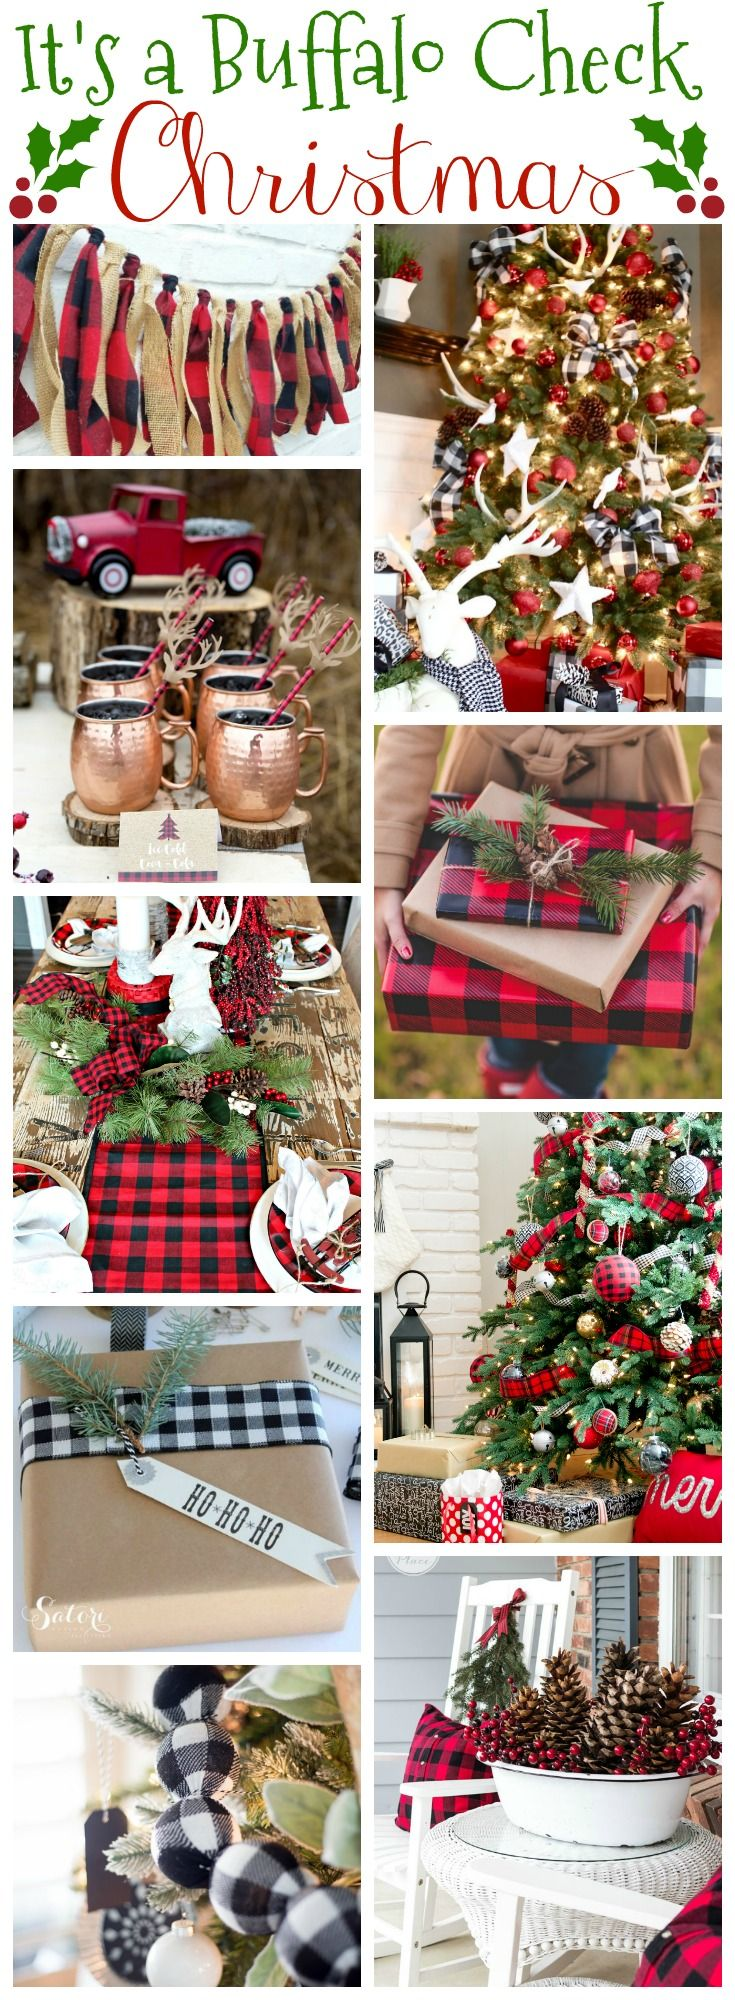 its a buffalo check christmas buffalo check or buffalo plaid inspiration decor - Buffalo Christmas Decorations